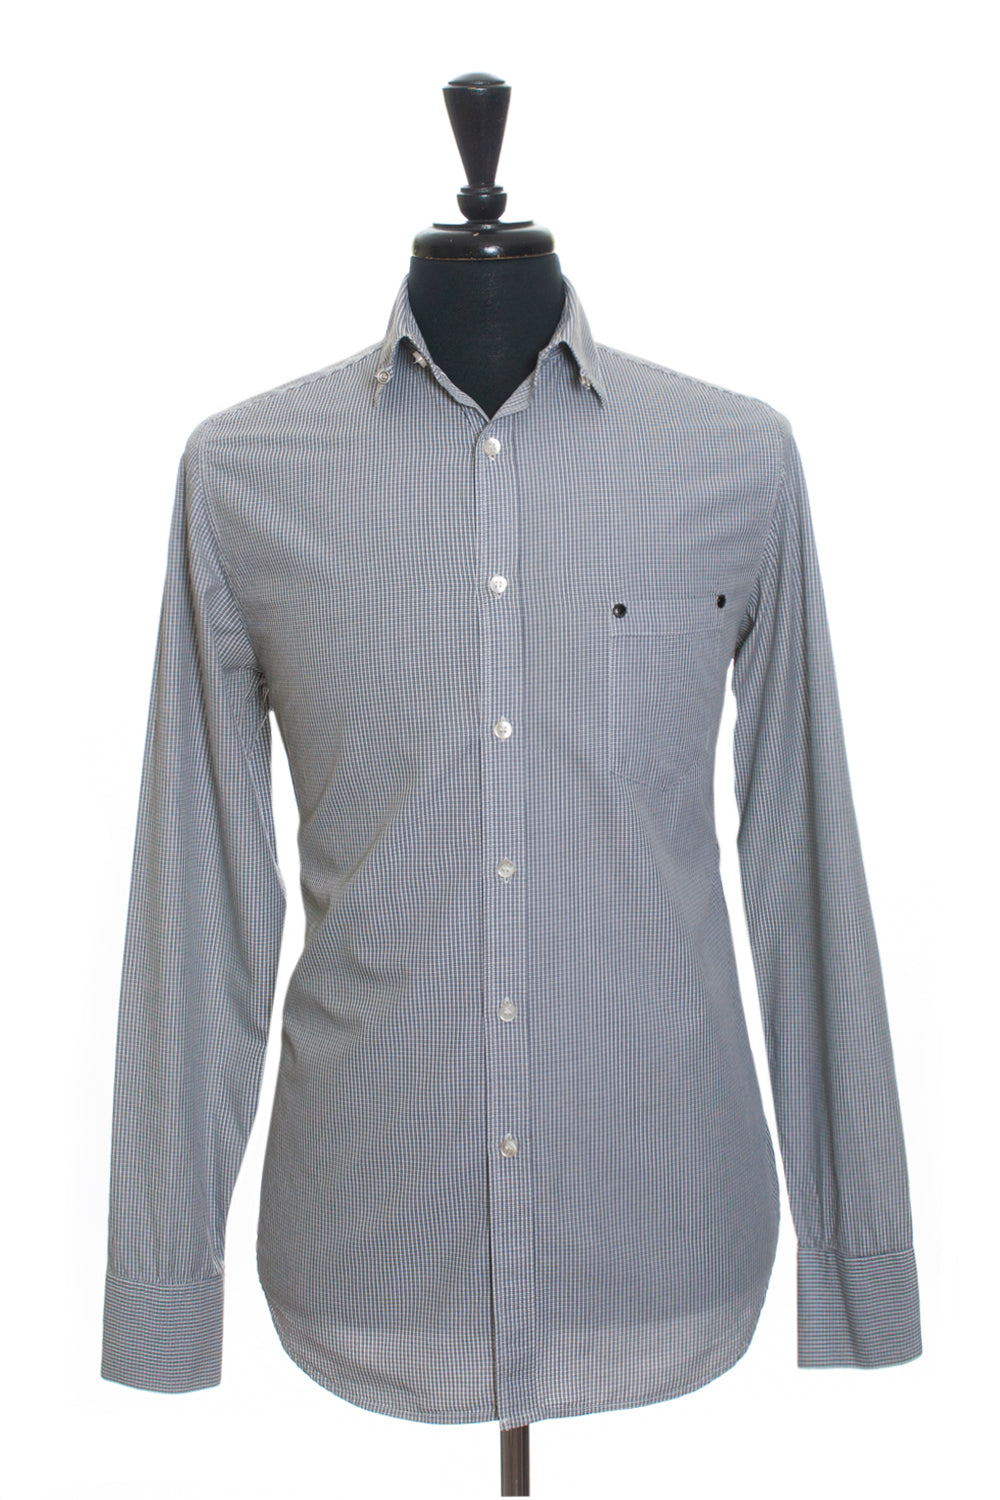 Fifth Avenue Shoe Repair Grey Check Casual Shirt for Luxmrkt.com Menswear Consignment Edmonton